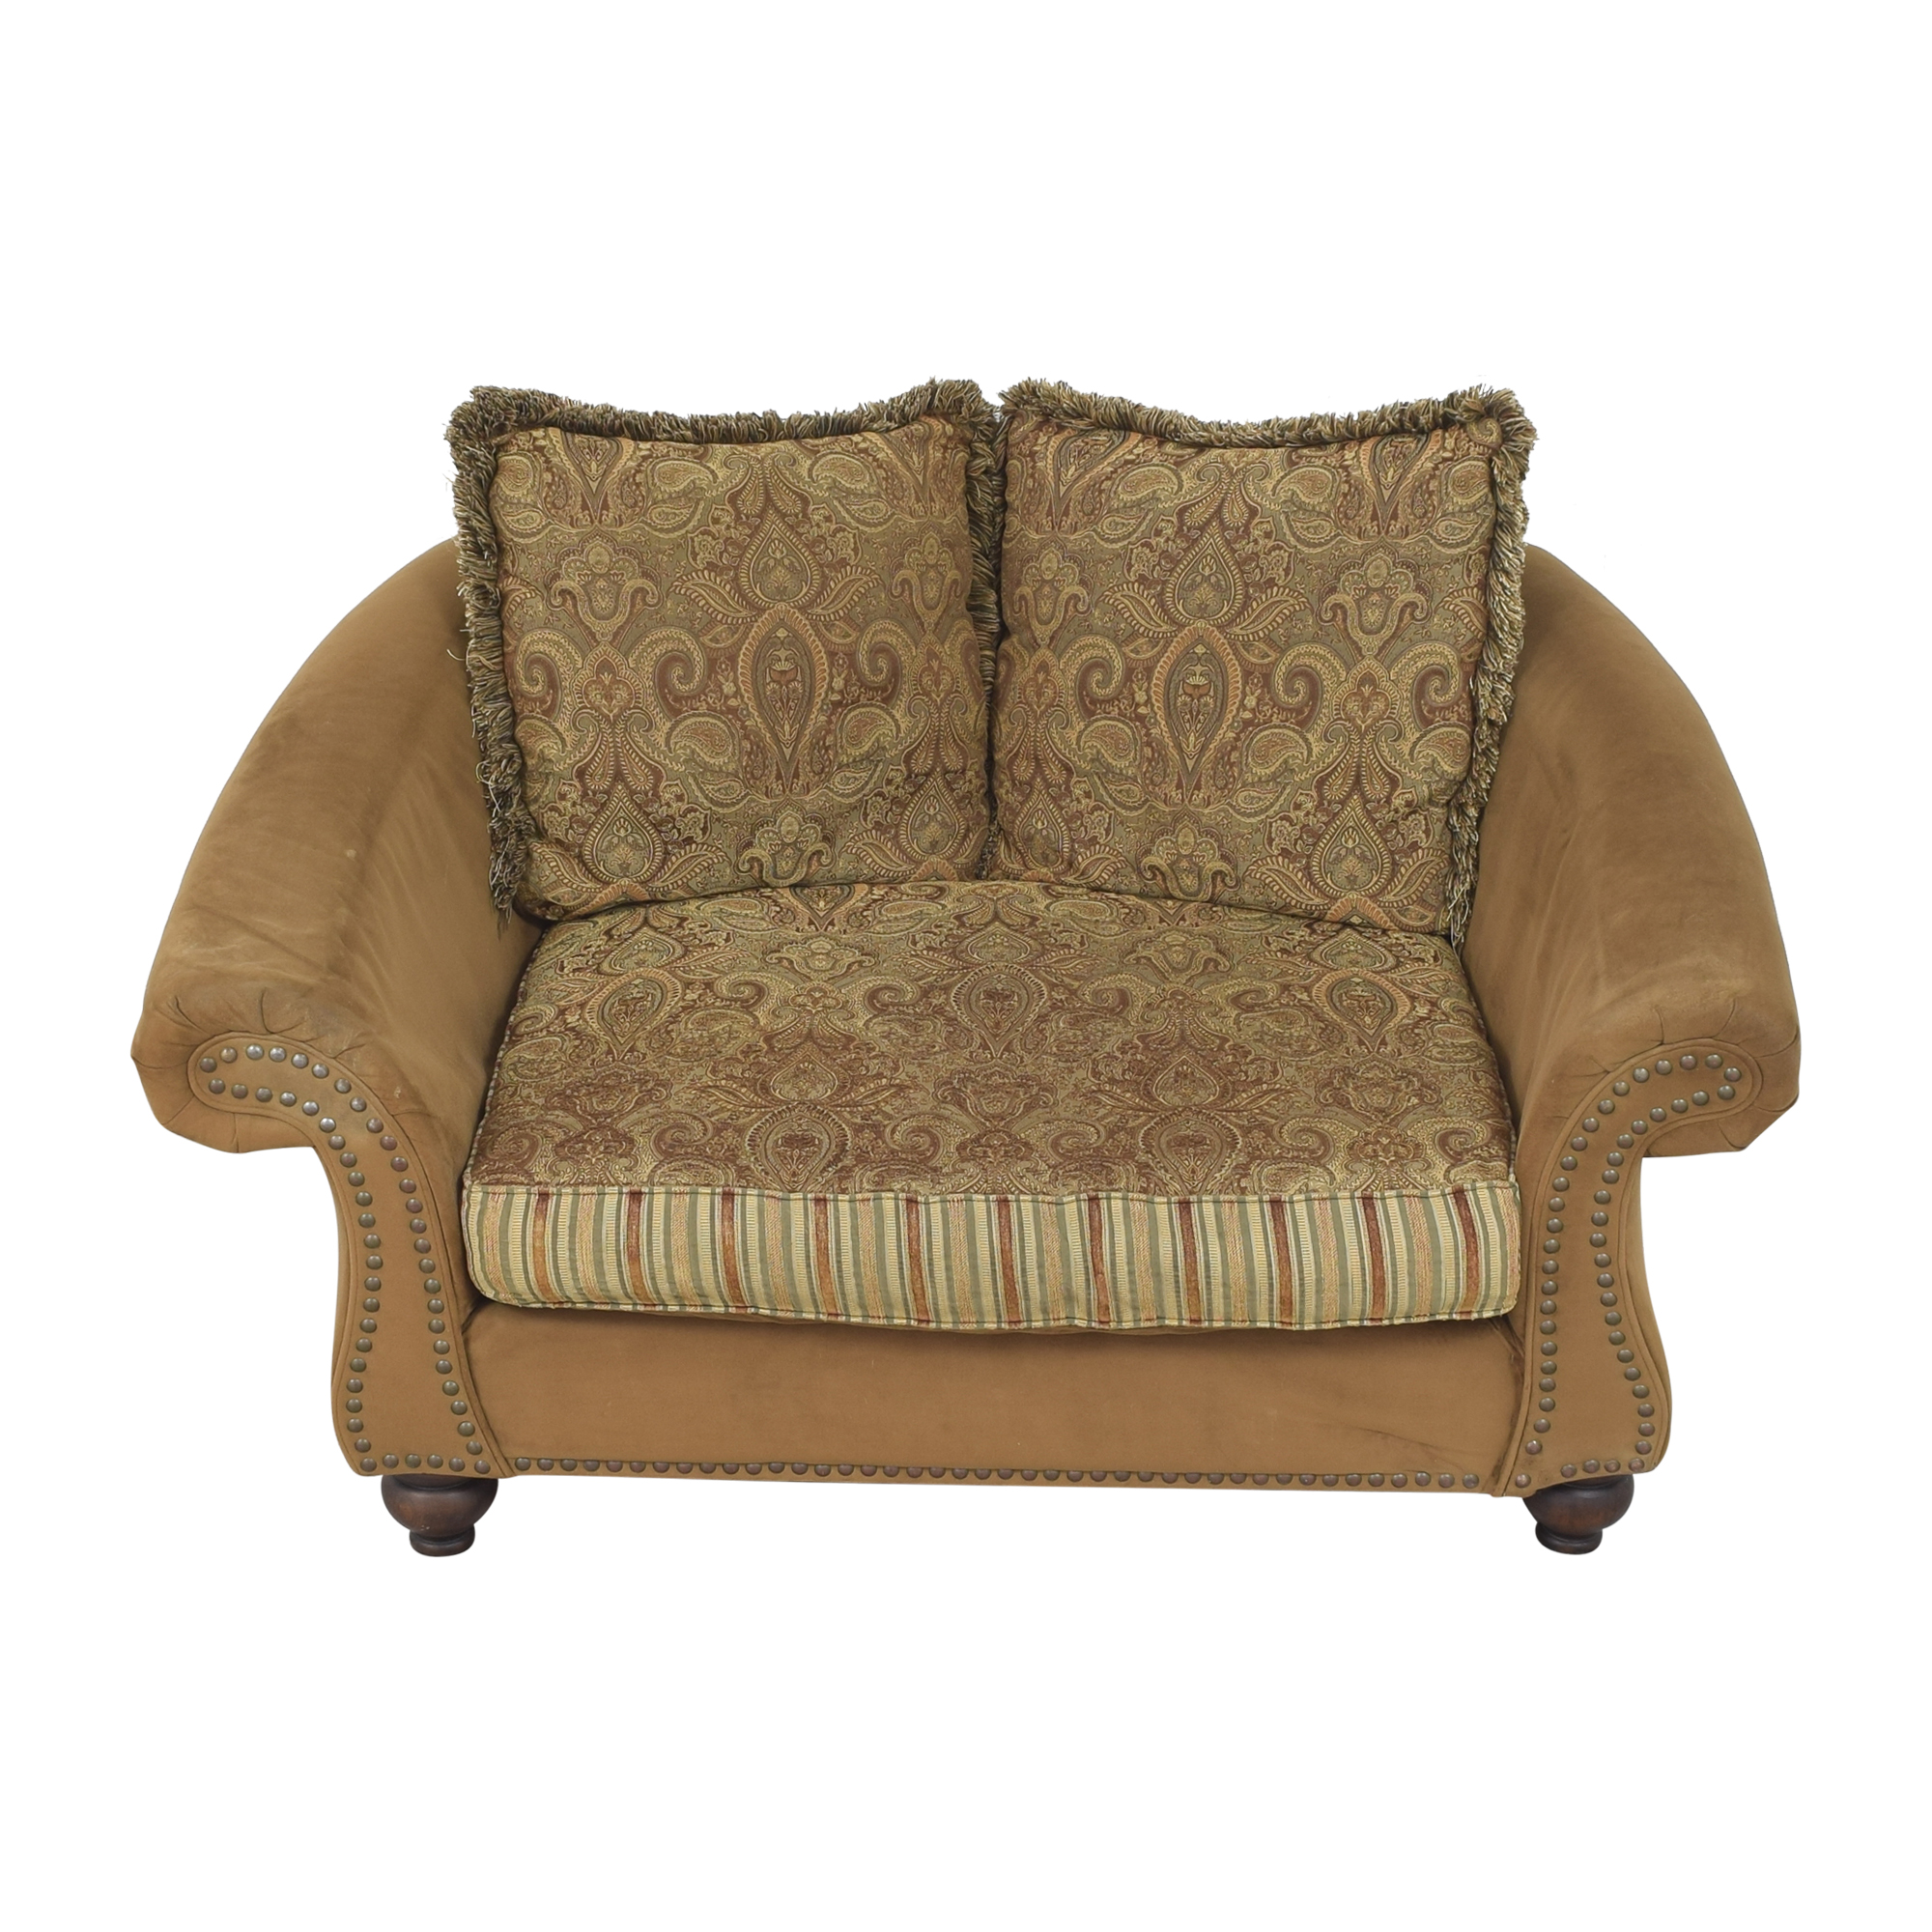 Cindy Crawford Home Cindy Crawford Home Nailhead Loveseat coupon